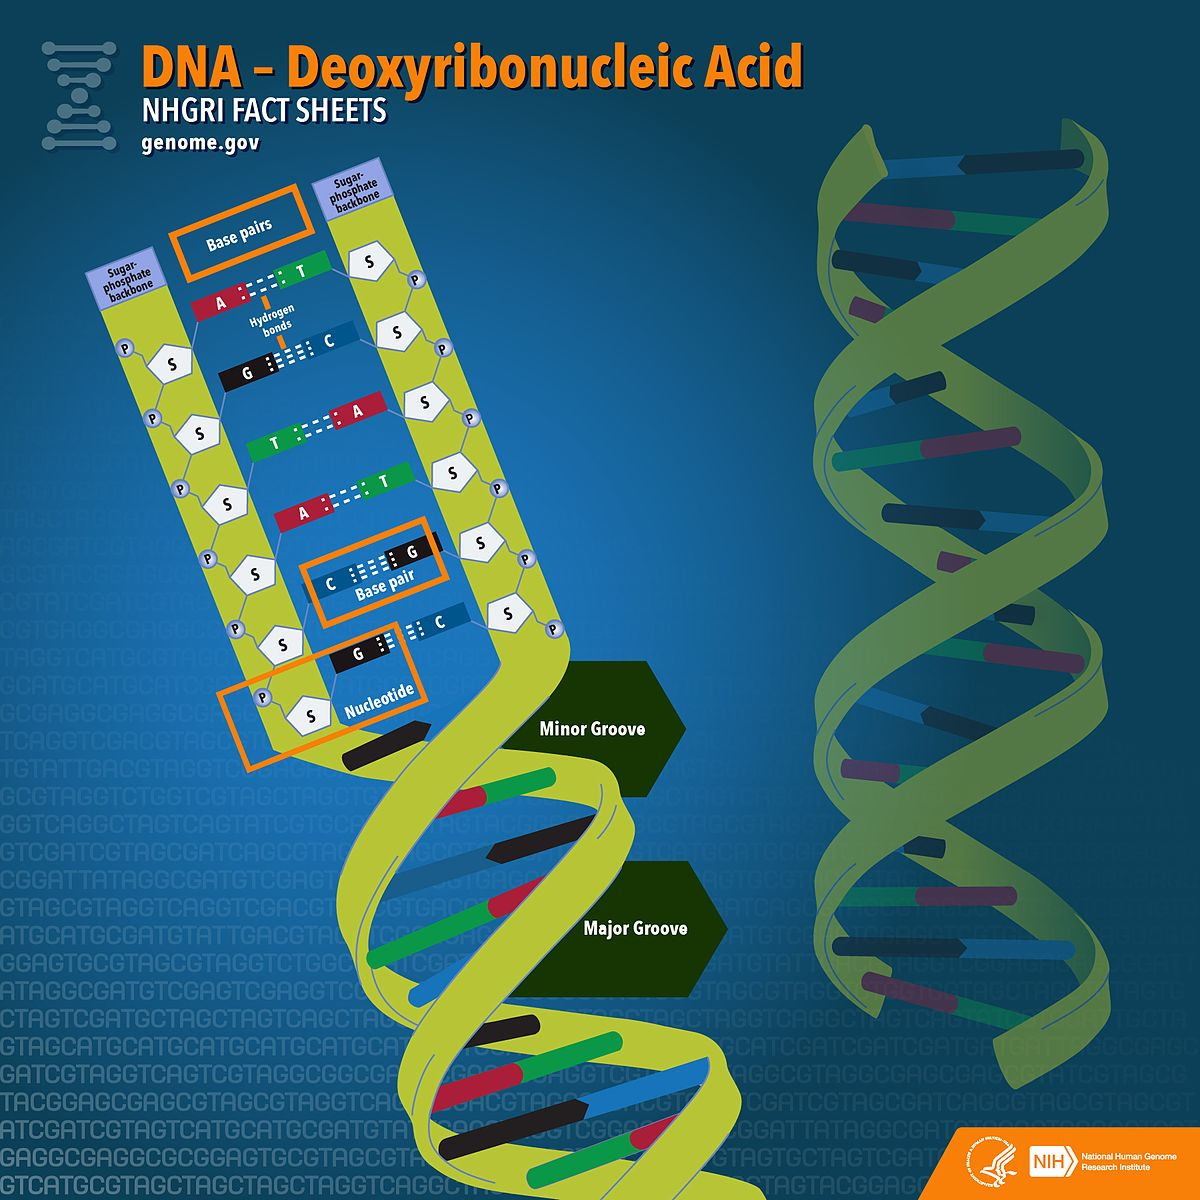 NHGRI Fact Sheet- Deoxyribonucleic Acid (DNA) (26990477451).jpg